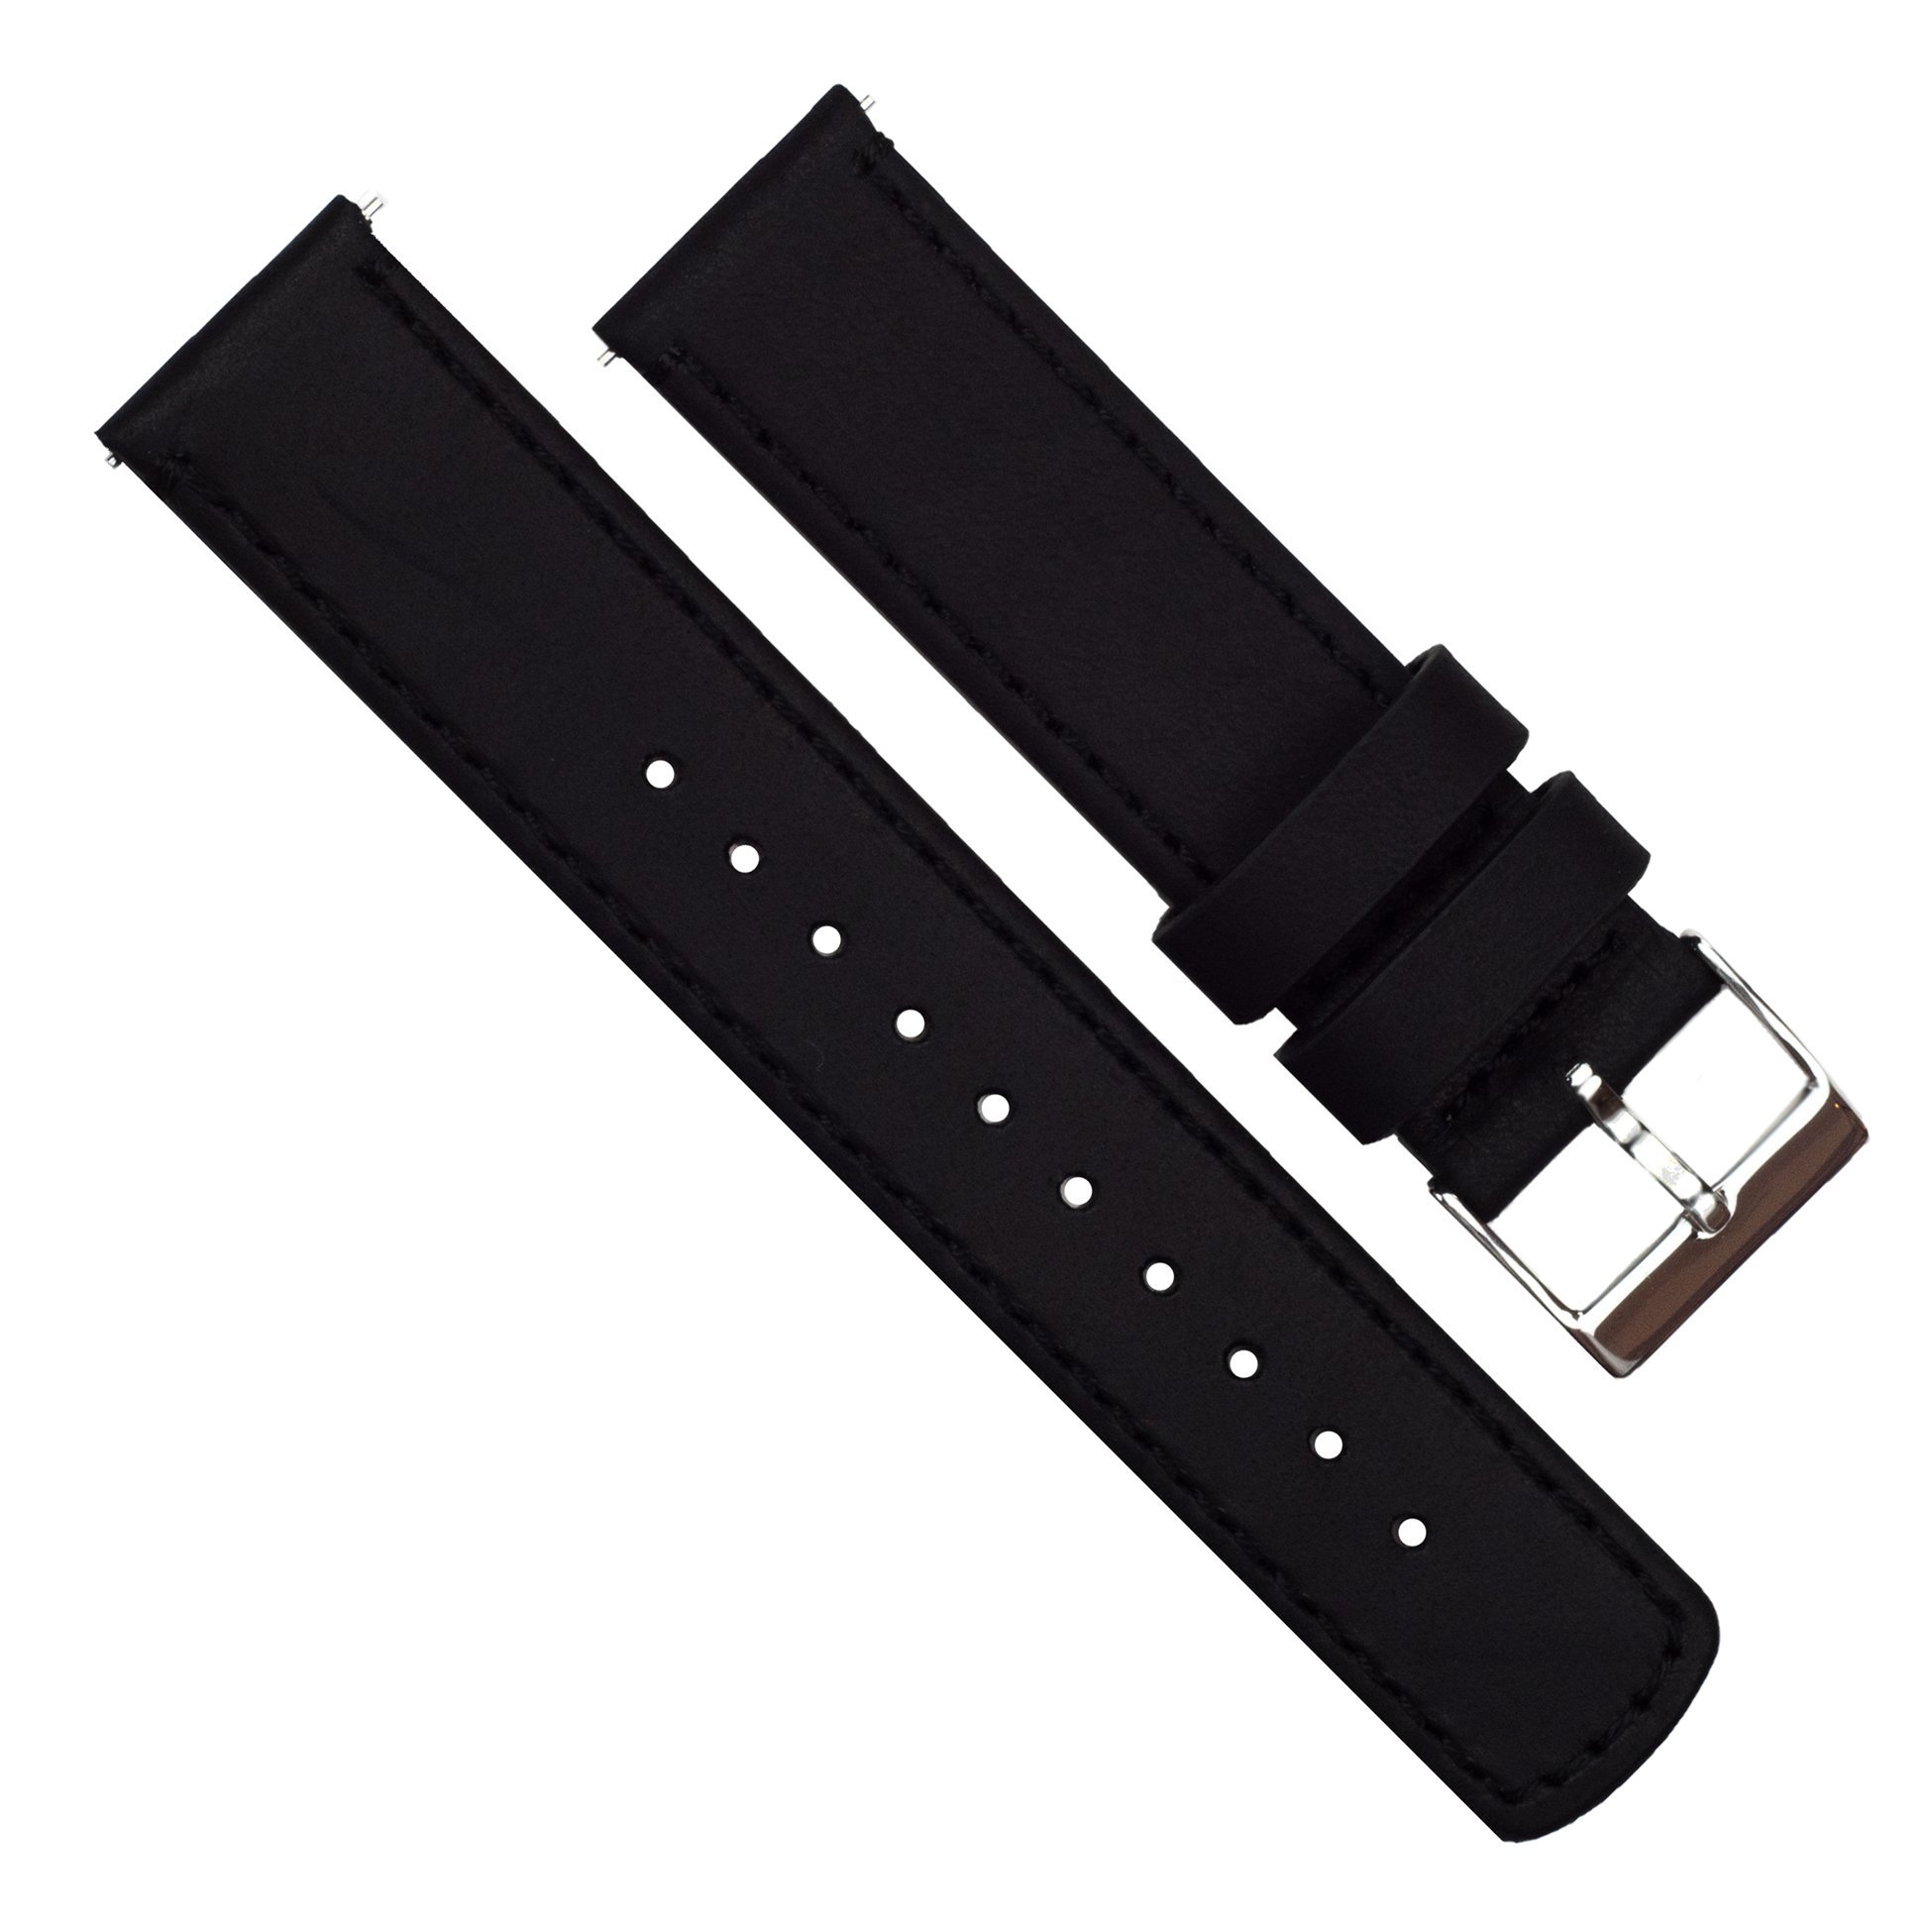 Barton Quick Release Top Grain Leather Watch Band Strap - Choose Color - 16mm, 18mm, 20mm, 22mm or 24mm - Black/Black 16mm by Barton Watch Bands (Image #2)